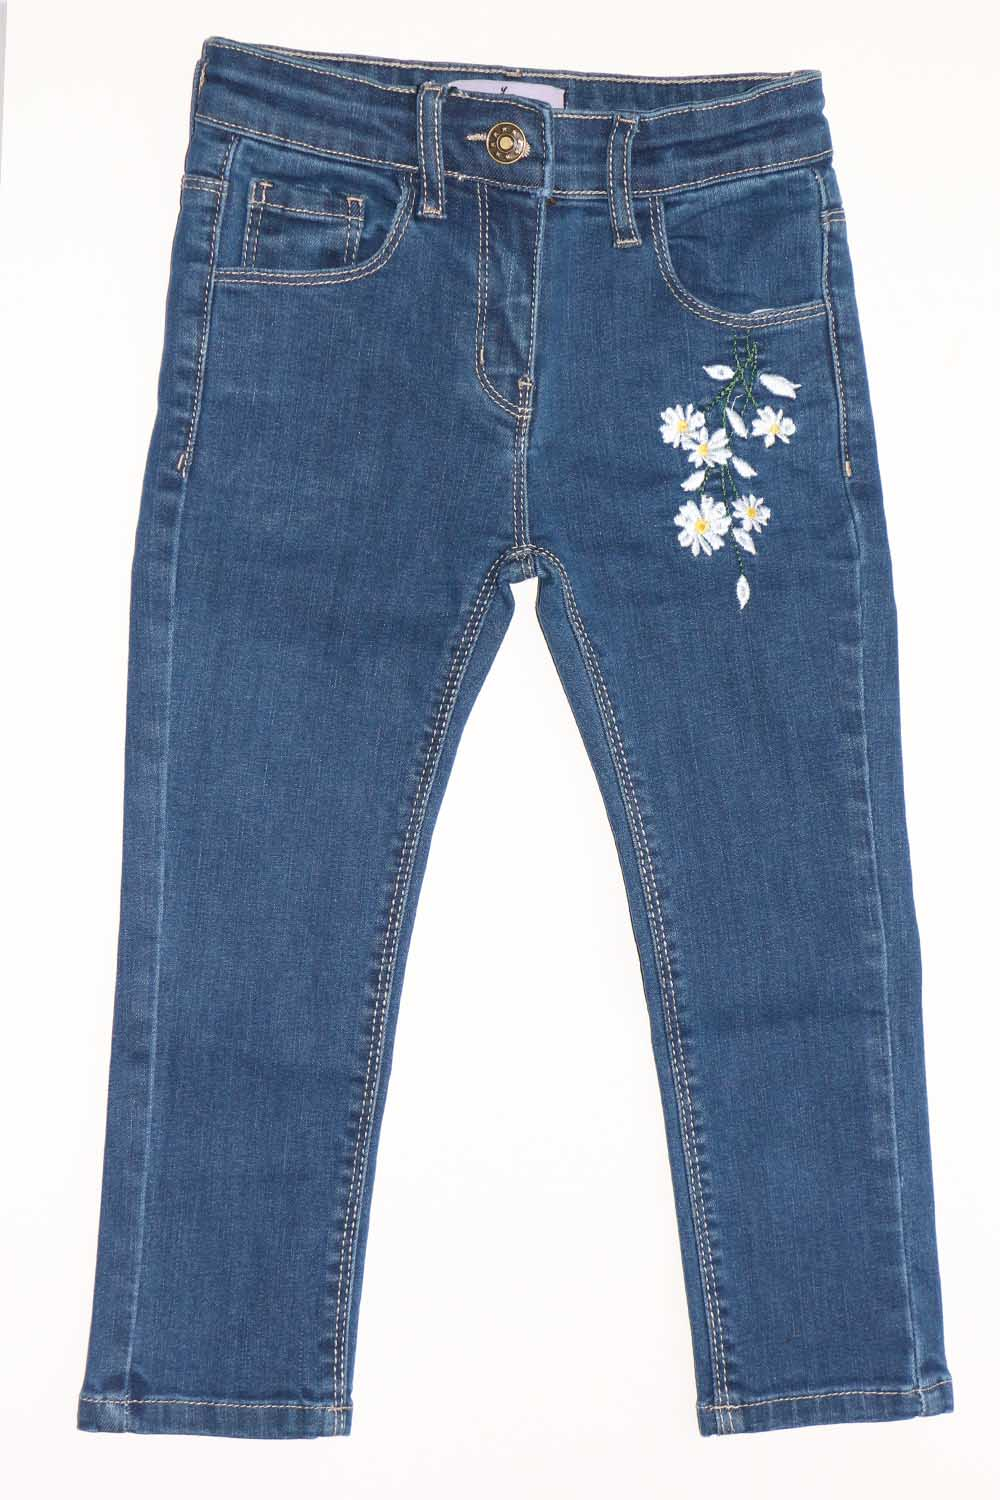 Girls Flower embroidery jeans